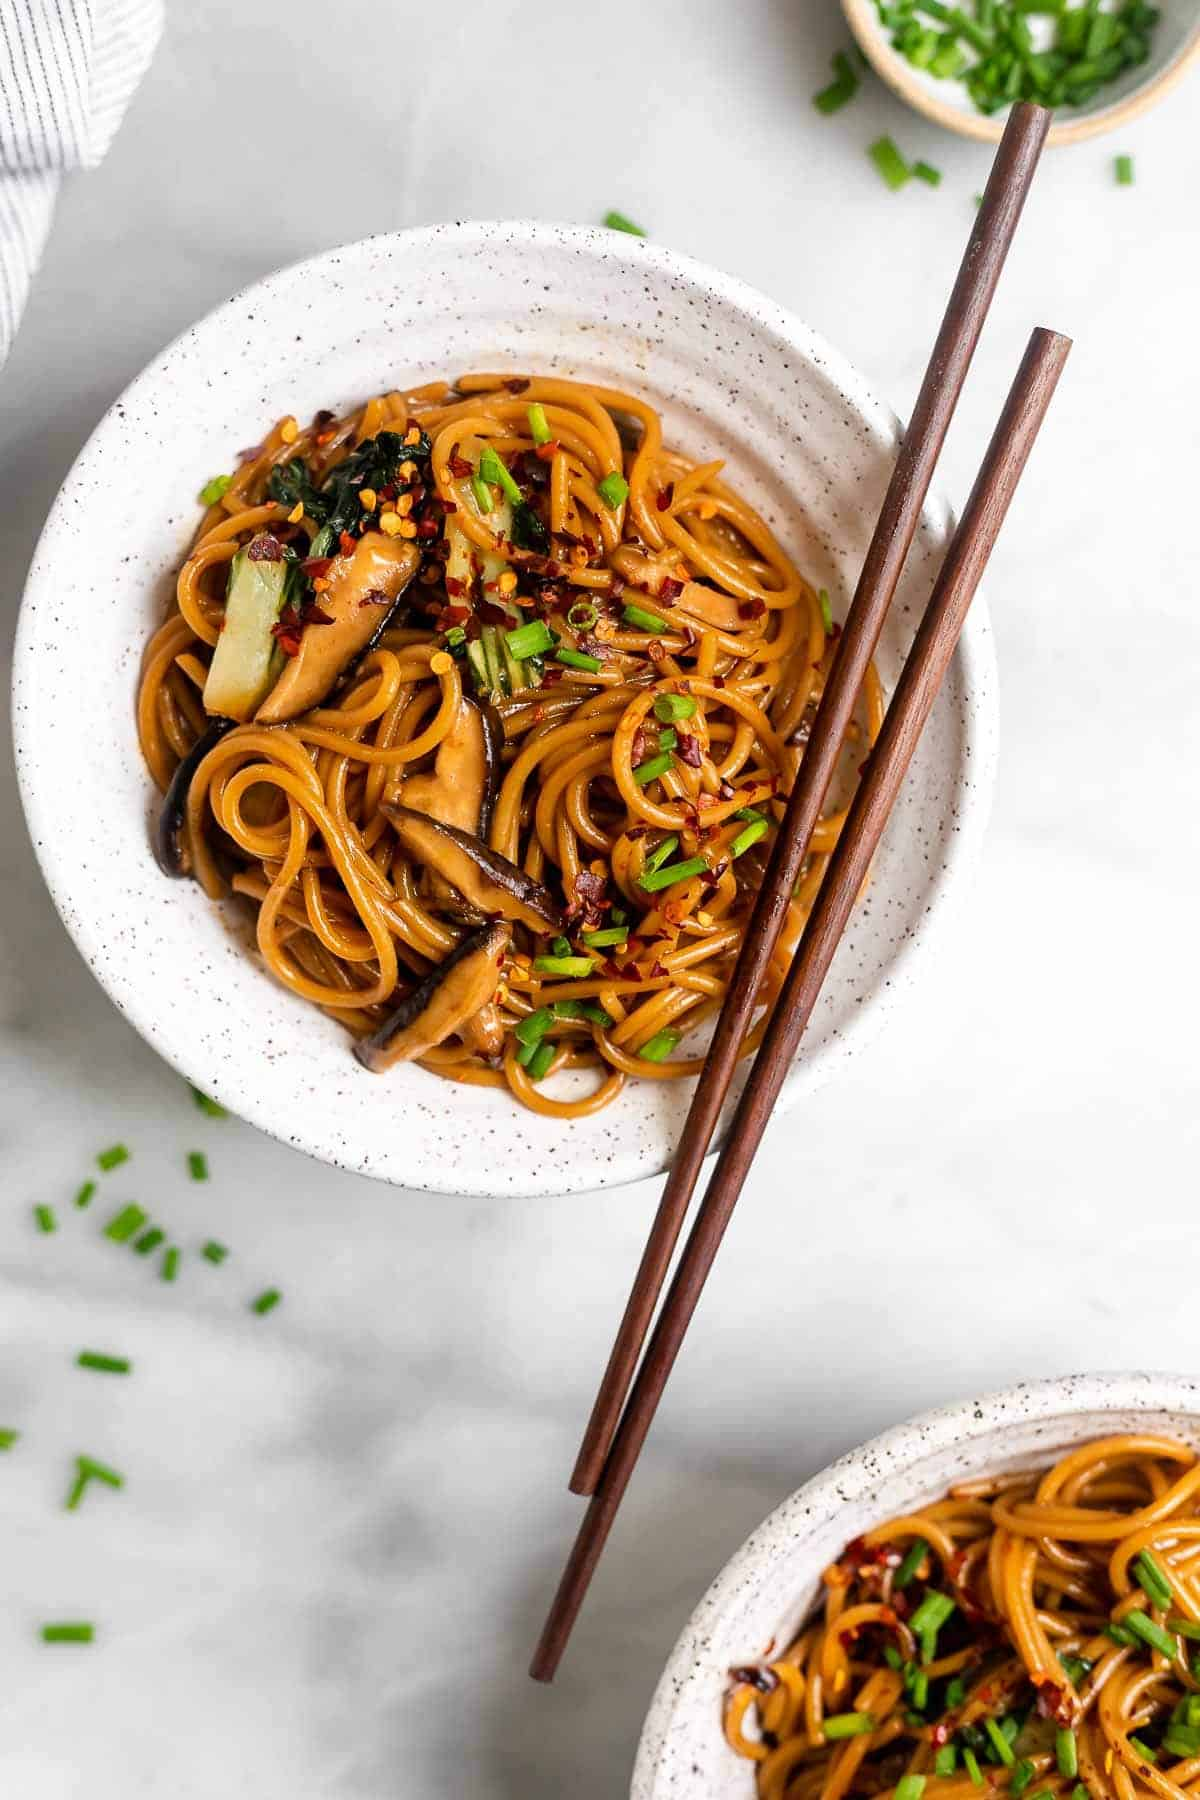 teriyaki noodles in a bowl with chopsticks on the side